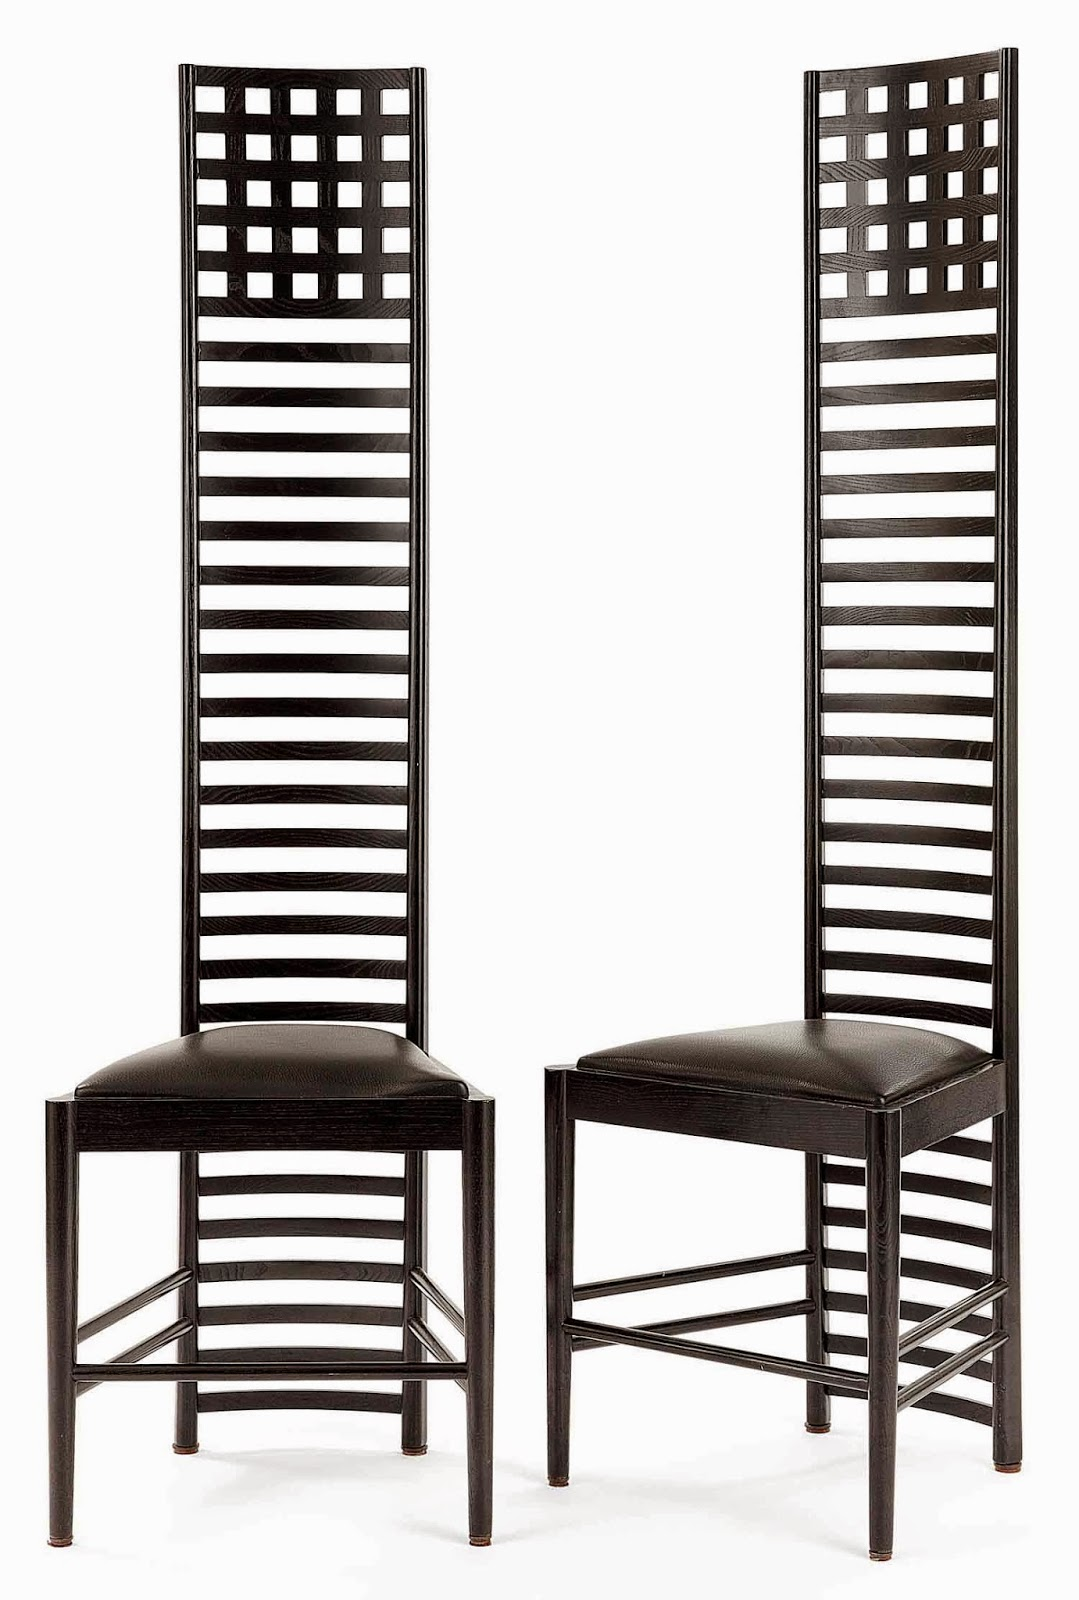 be inspired designer retrospective charles rennie mackintosh. Black Bedroom Furniture Sets. Home Design Ideas